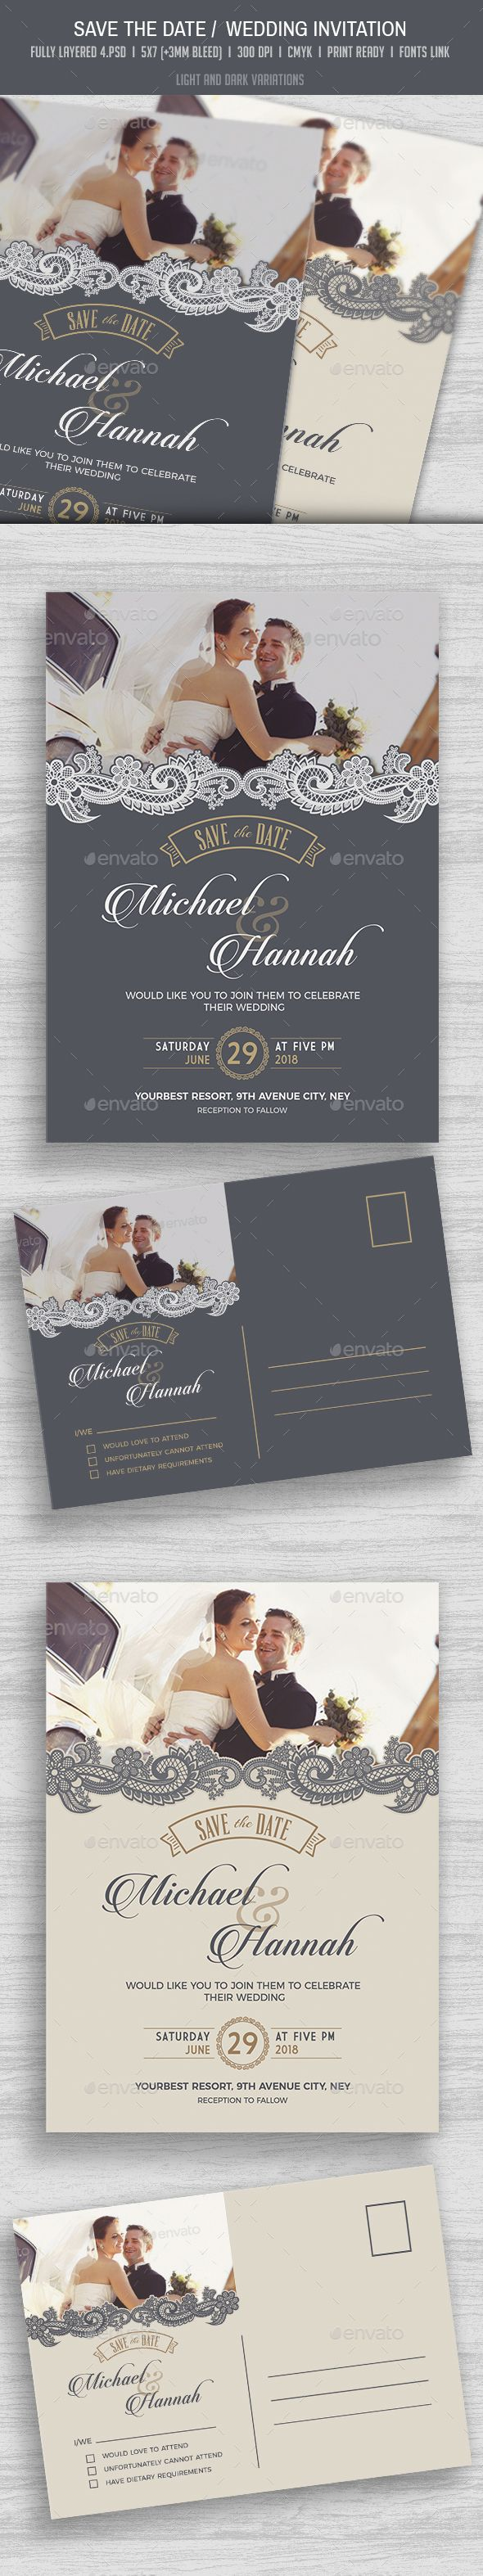 size of response cards for wedding invitations%0A Save the Date   Wedding Invitation  u     RSVP